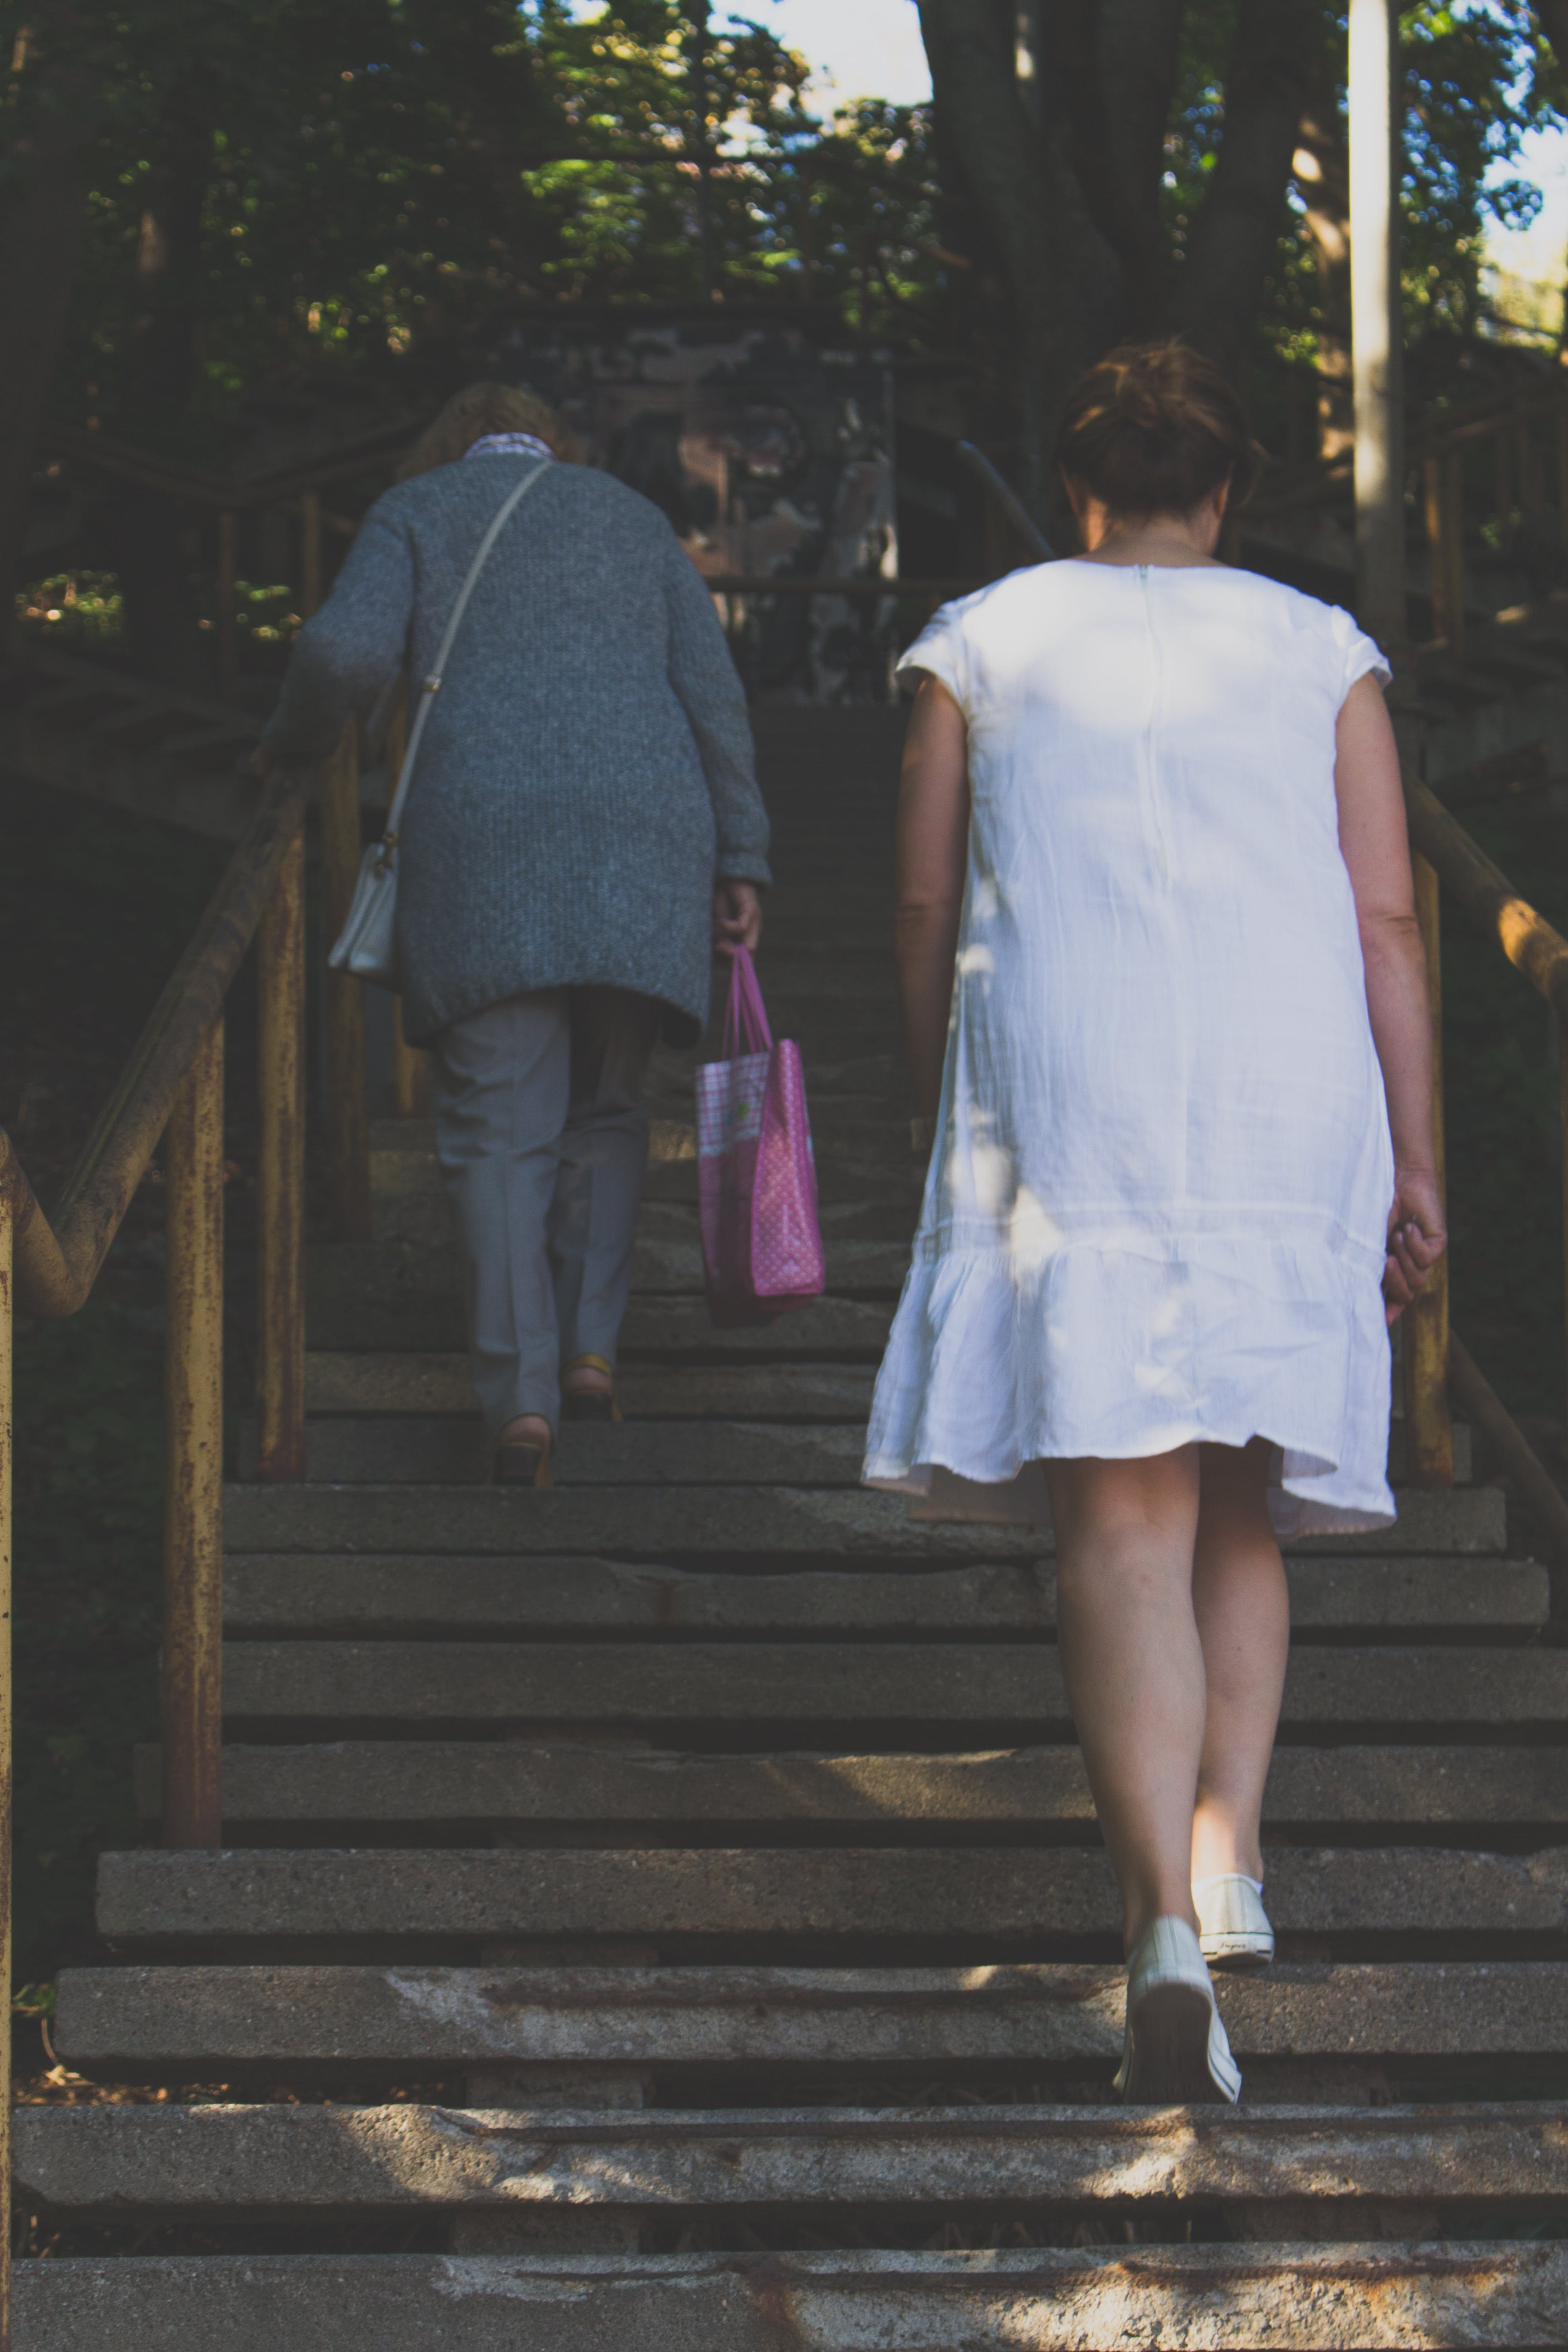 Free stock photo of stairs, fashion, people, women